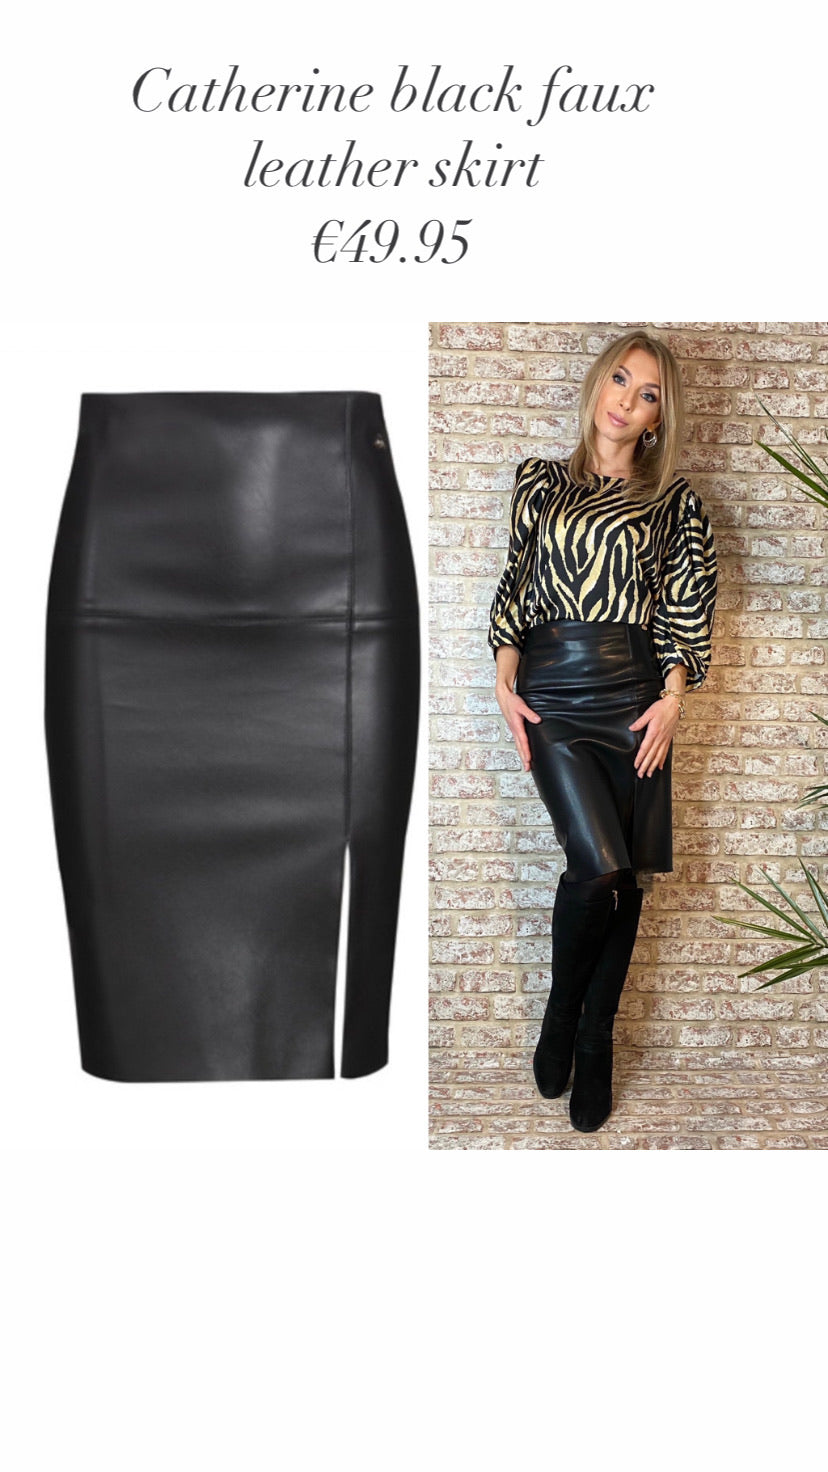 Catherine Black faux leather skirt